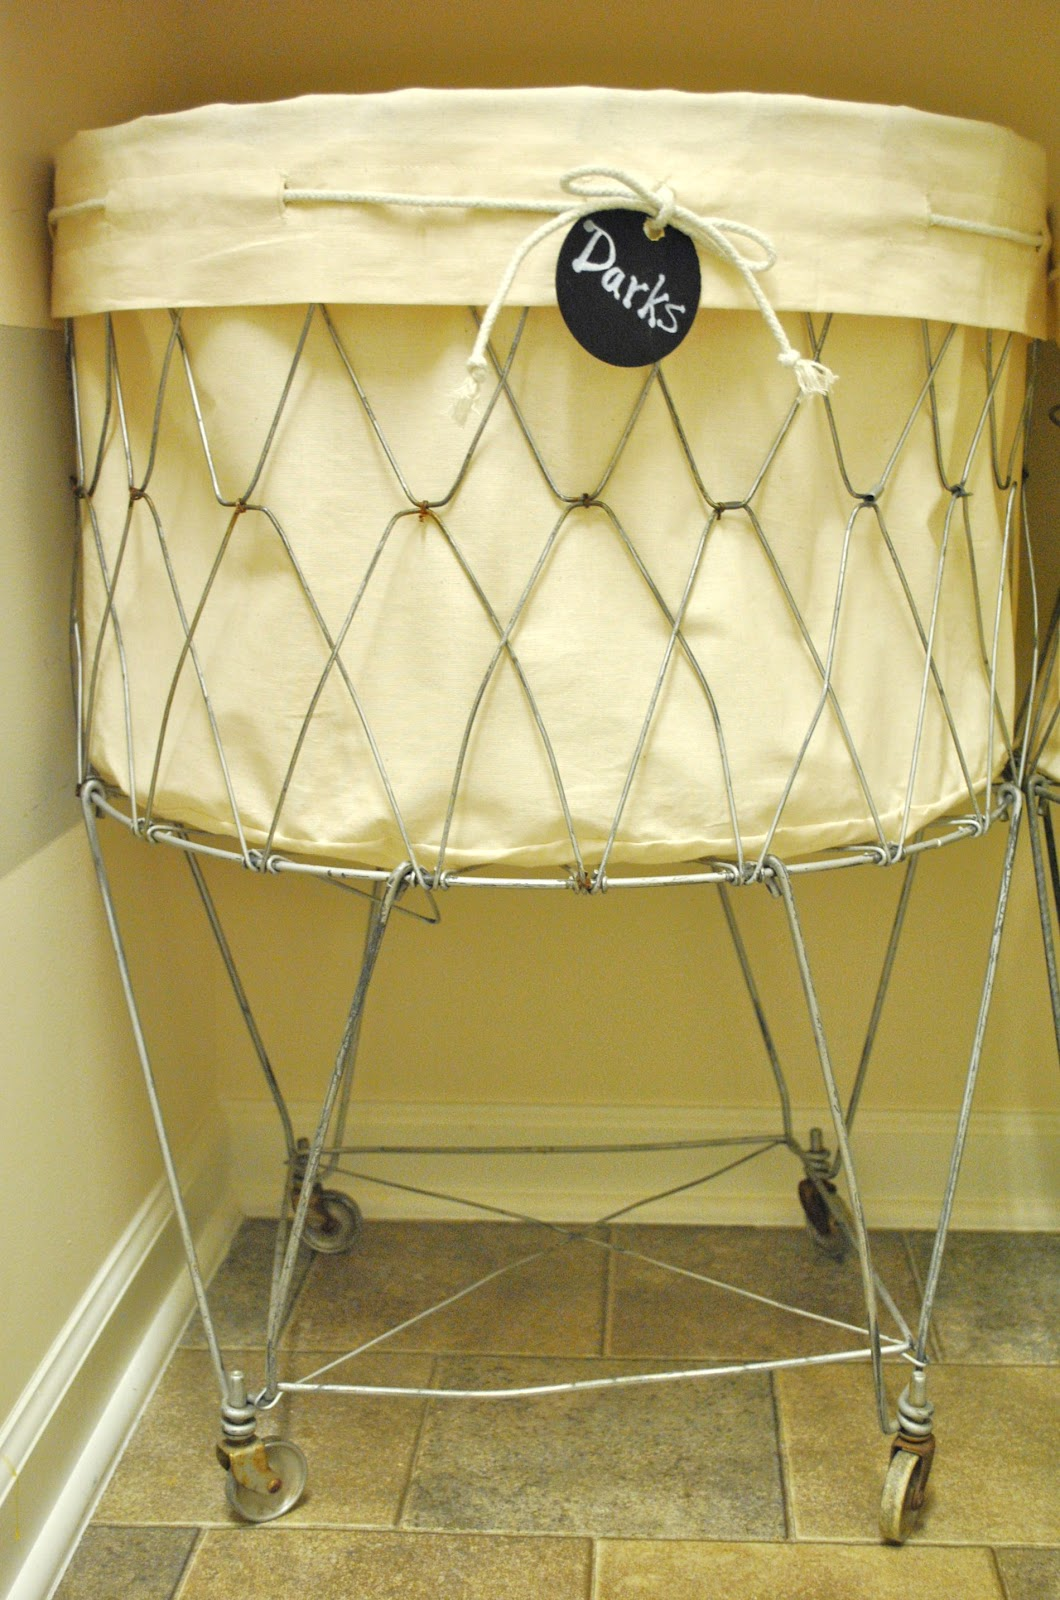 How to Make a Laundry Cart Liner